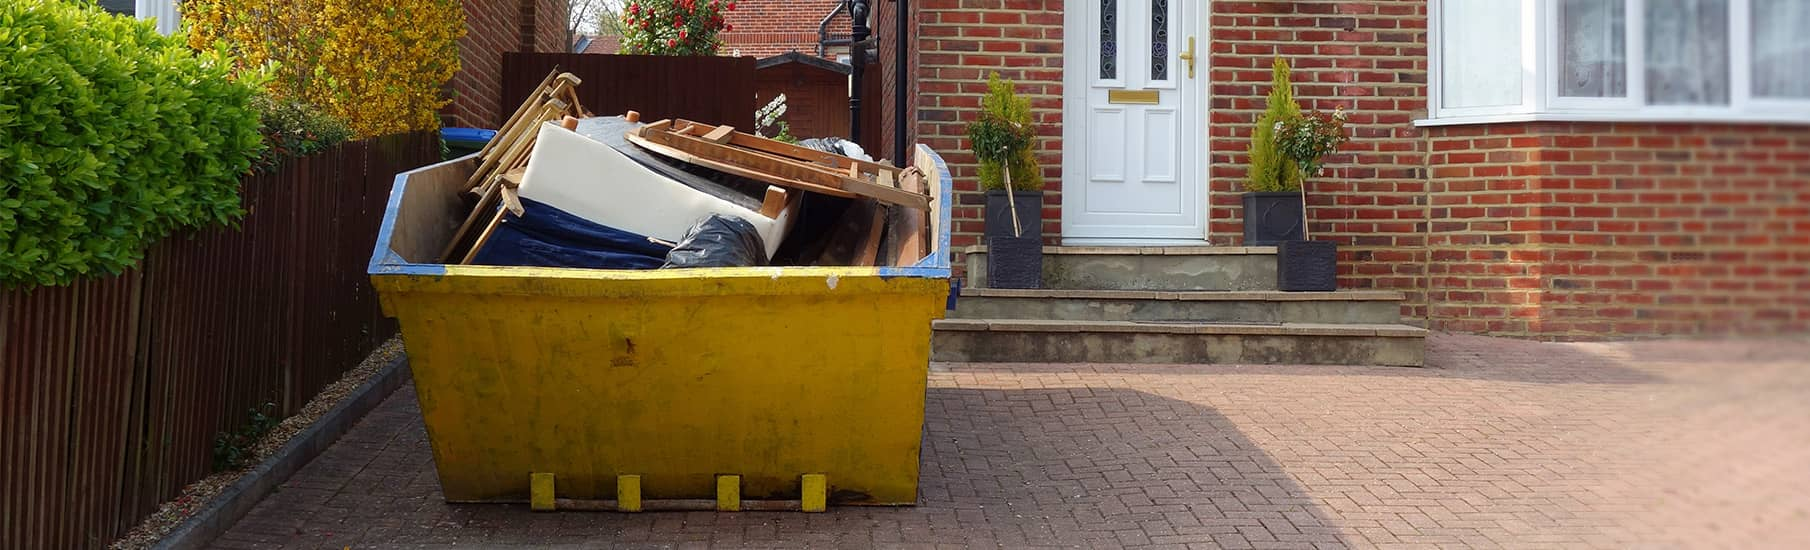 What size skip do I need for a home renovation?